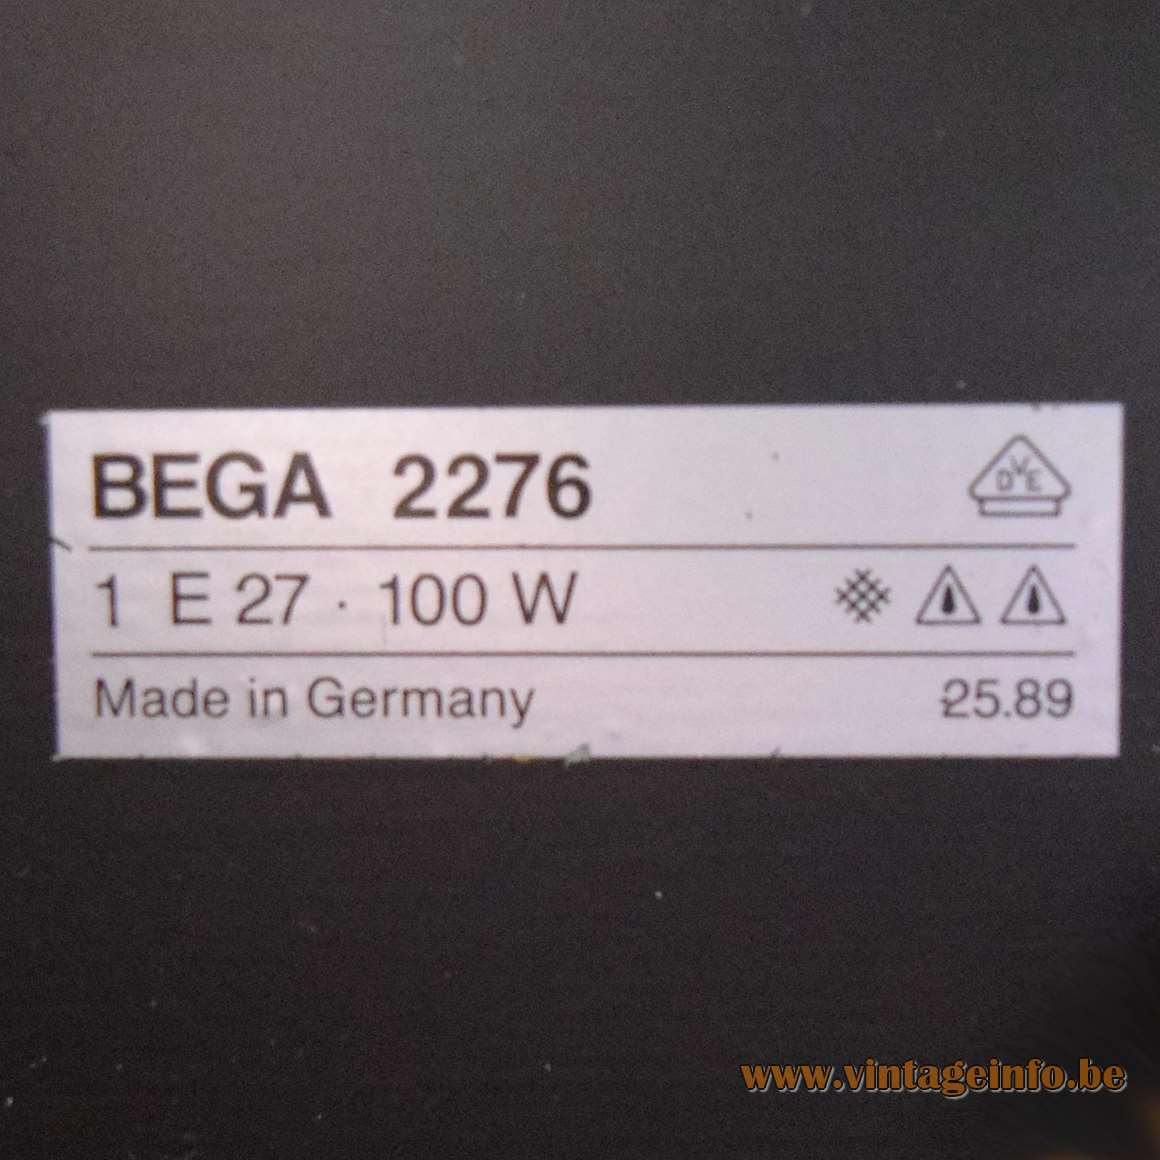 BEGA 1980s outdoor curved wall lamp 2276 garden light black anthracite aluminium wrinkle paint Germany